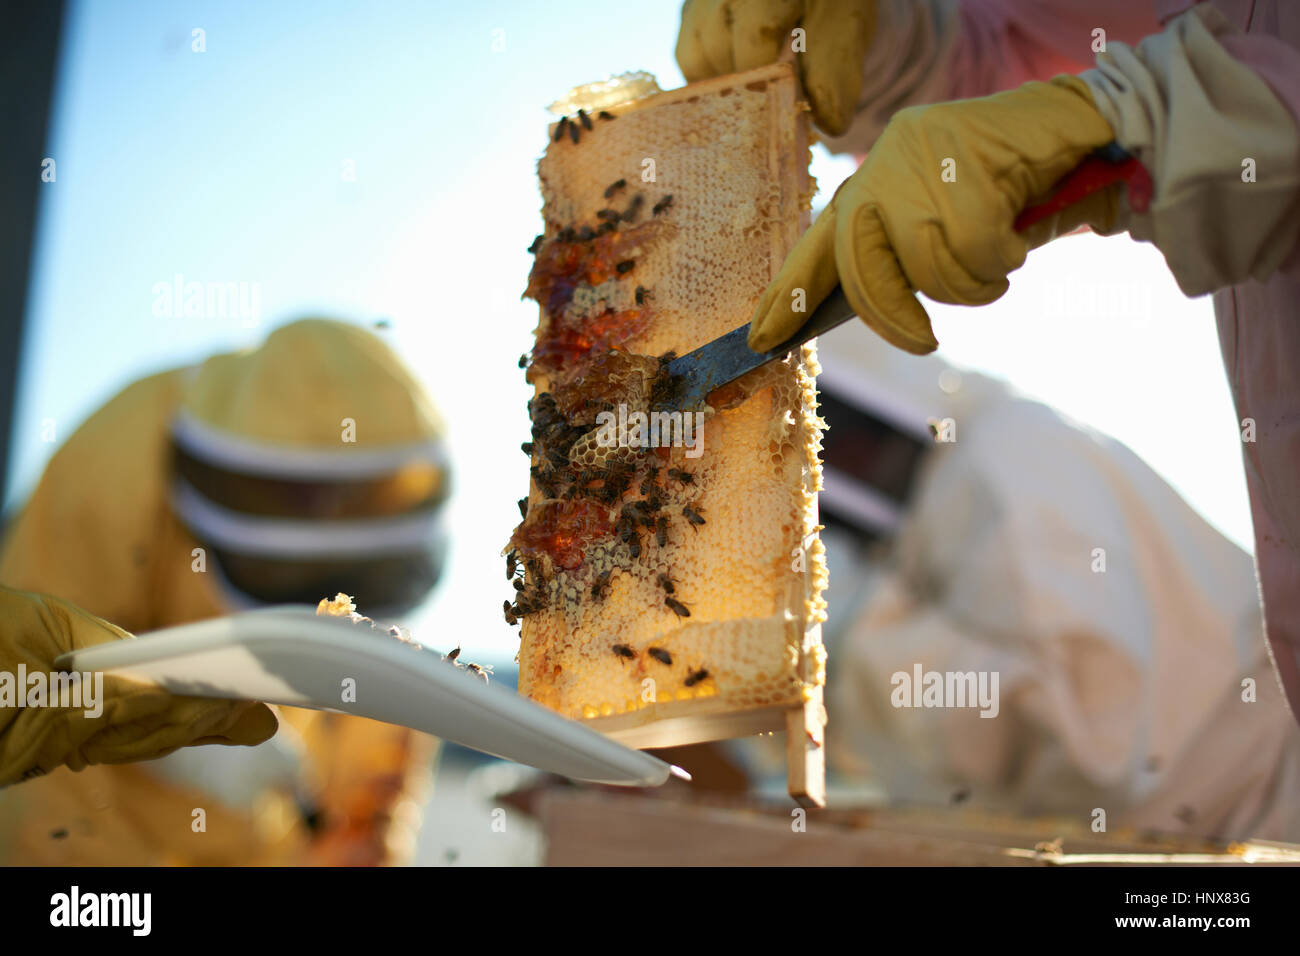 Beekeepers scraping honeycomb tray on city rooftop - Stock Image